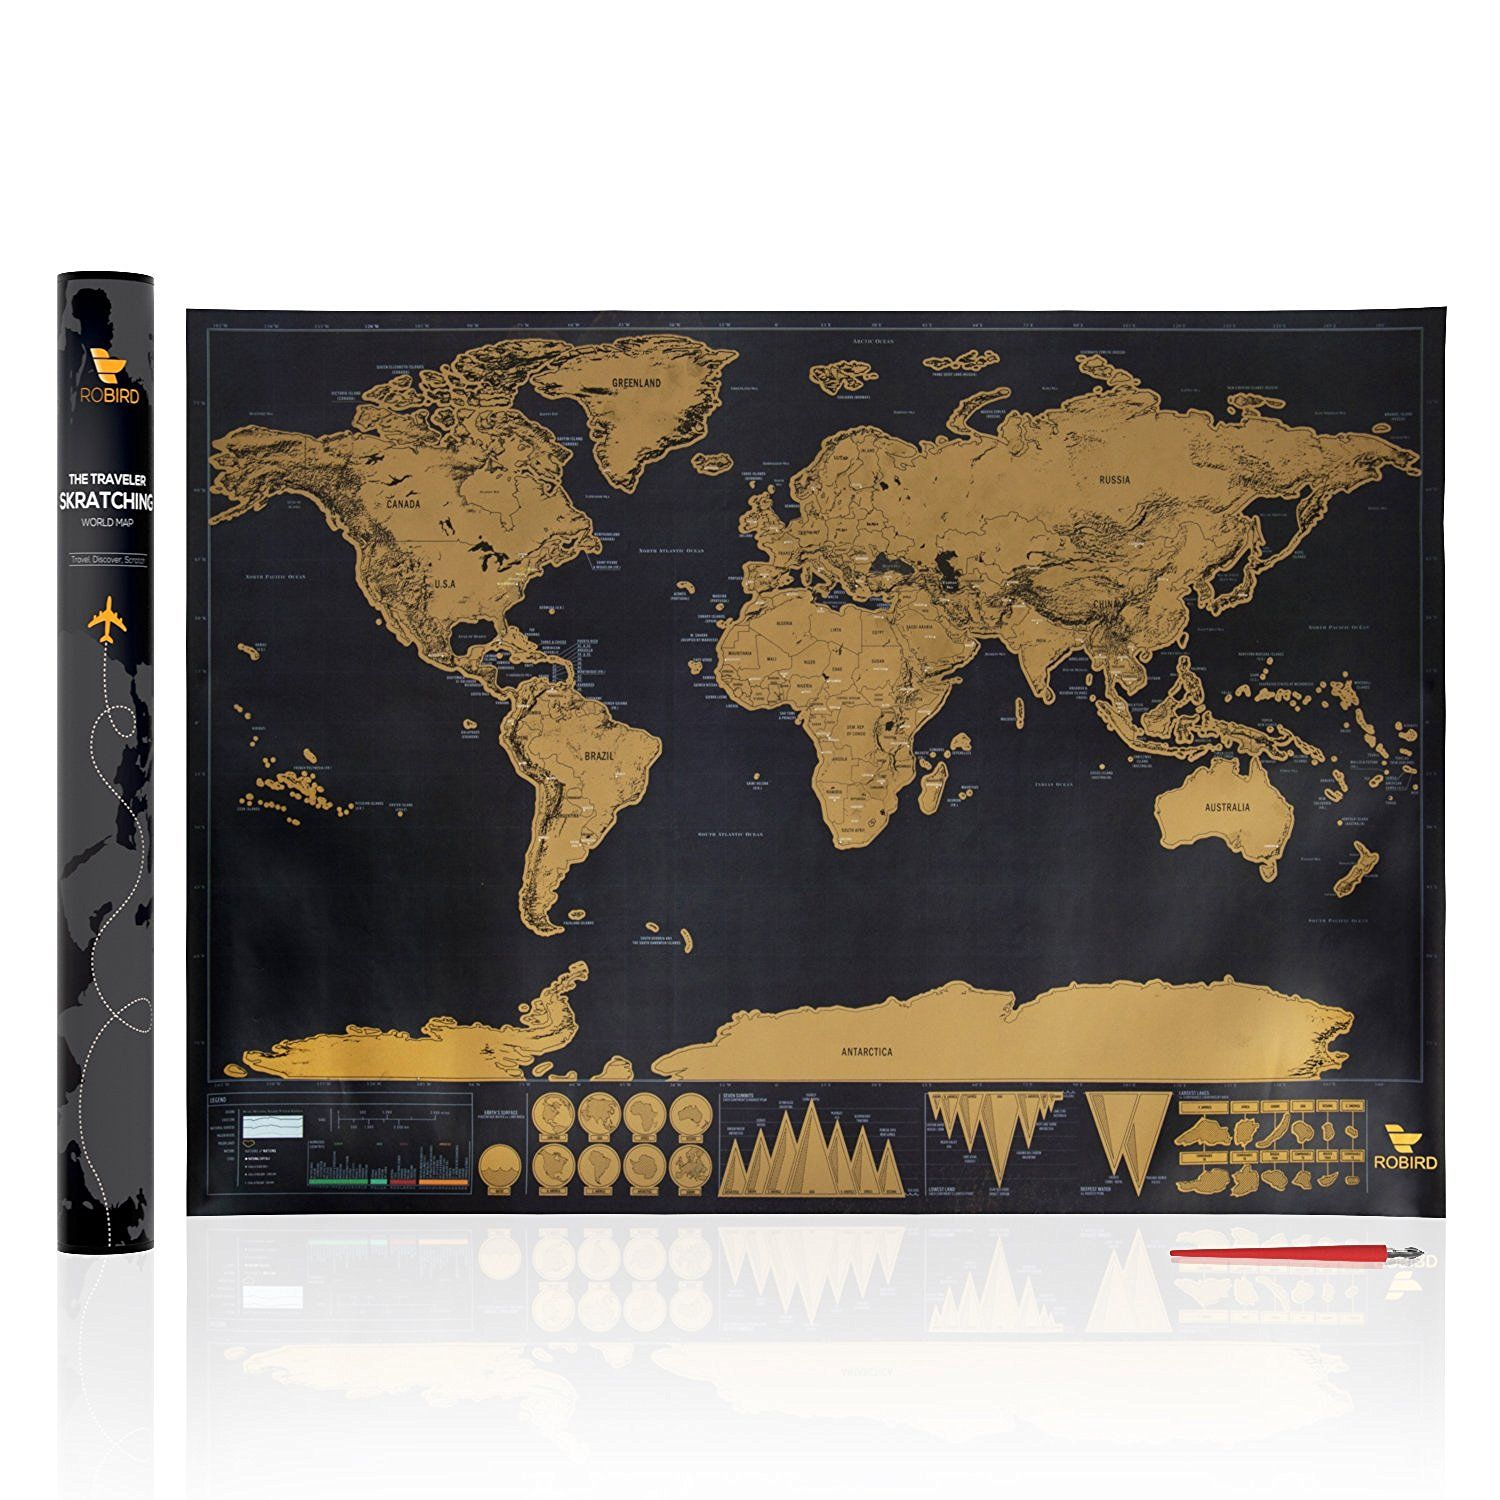 Amazon robird premium quality world traveler map large black amazon robird premium quality world traveler map large black gold edition world map poster 325 inches x 234 inches perfect gift for any gumiabroncs Images